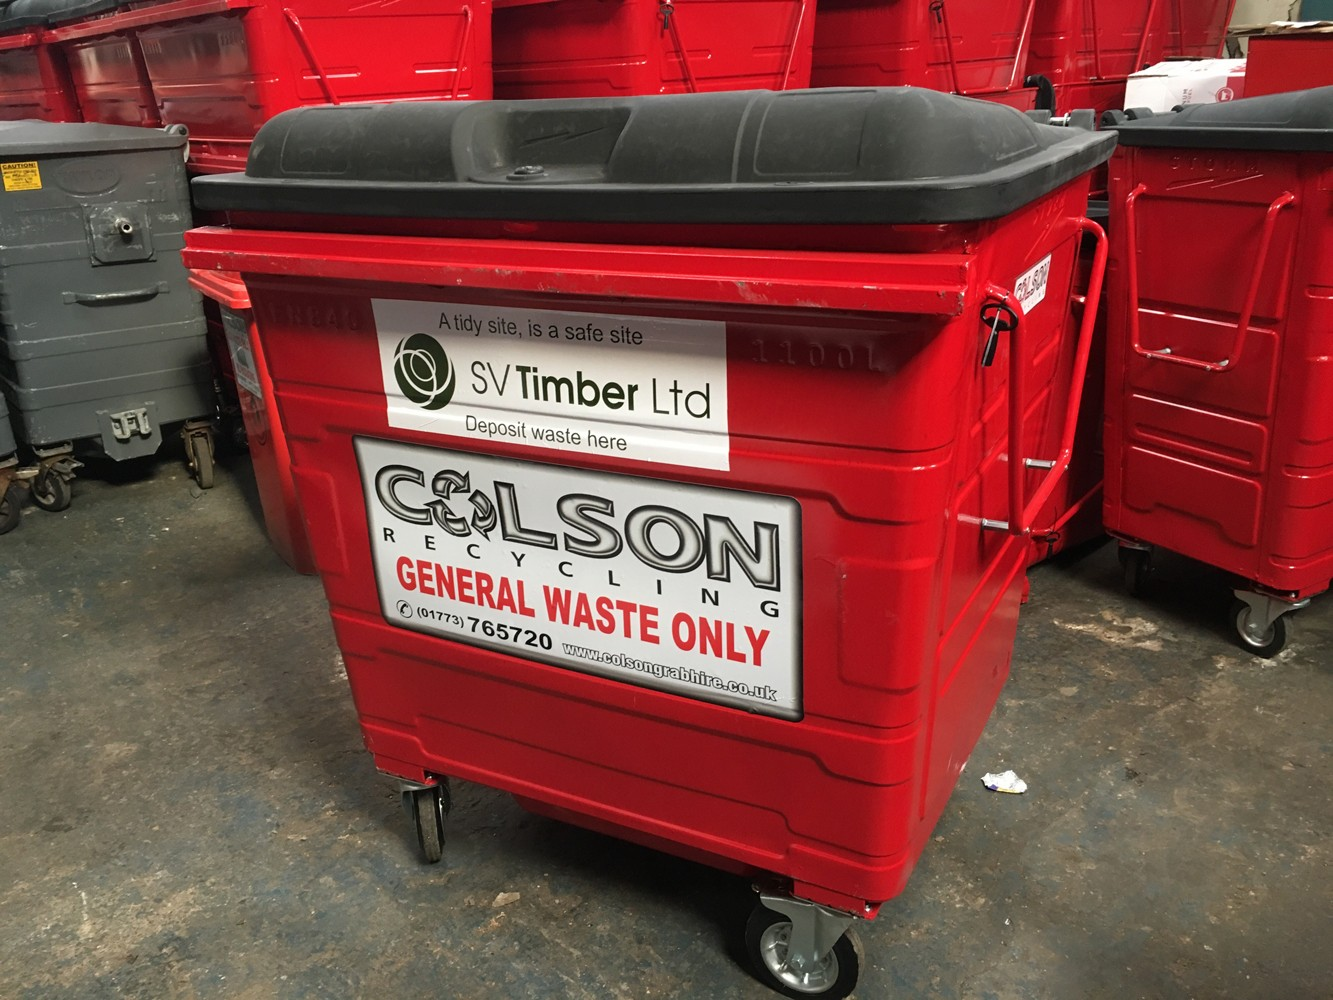 Colson Sadlers Waste - commercial waste bin